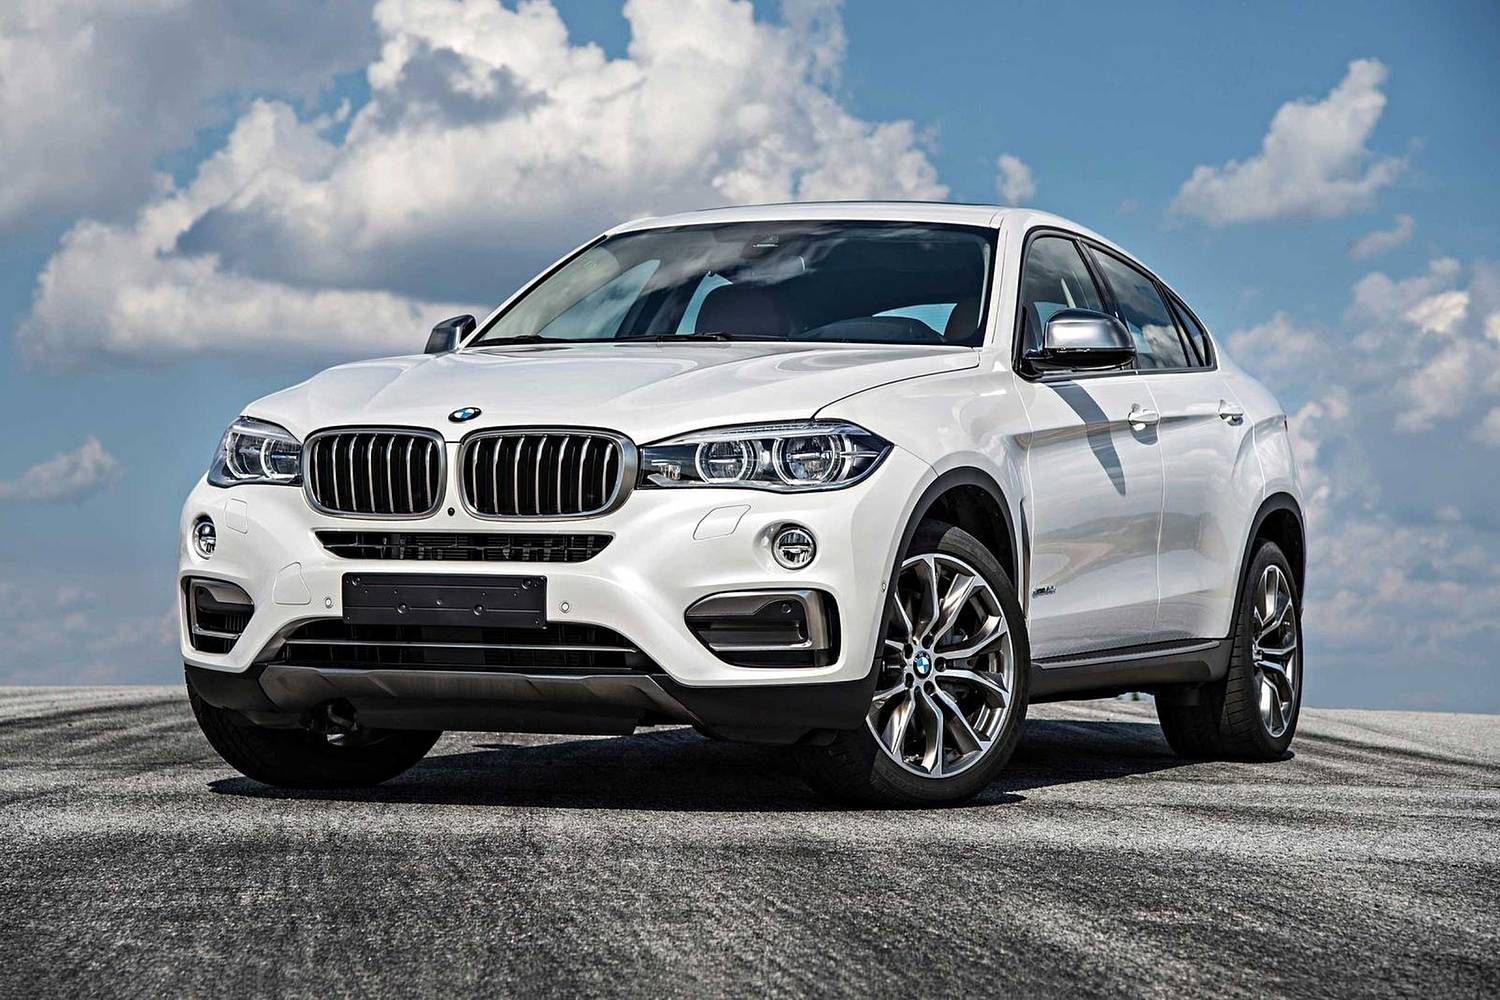 BMW X6 xDrive50i 4dr SUV Exterior Shown (2017 model year shown)